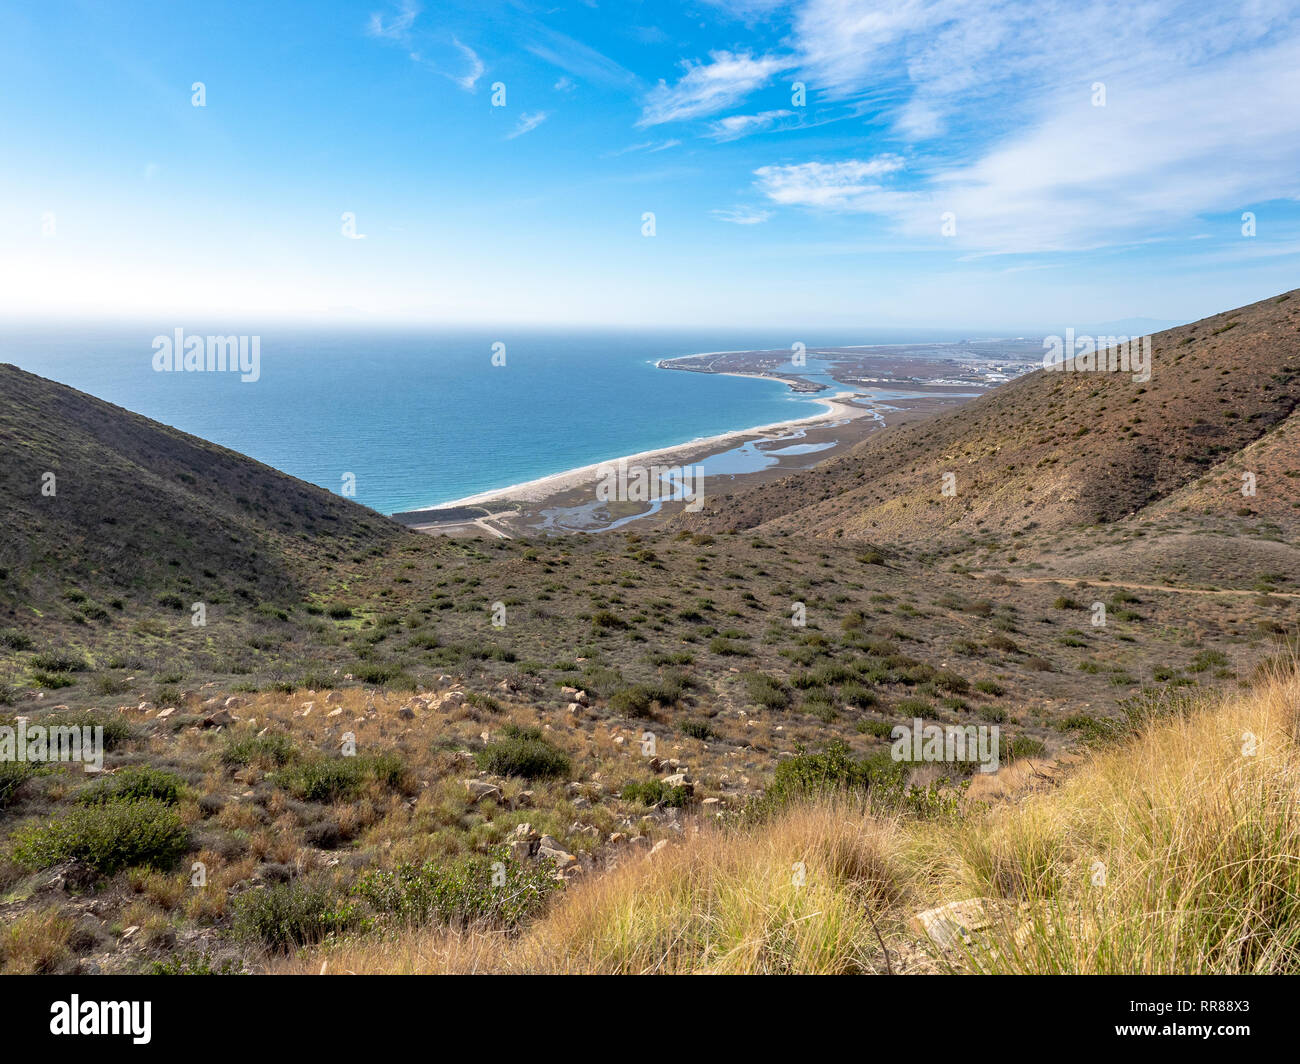 View of Port Hueneme Naval Base, from Chumash and Mugu Peak trail, Point Mugu State Park, Ventura County, California, USA - Stock Image